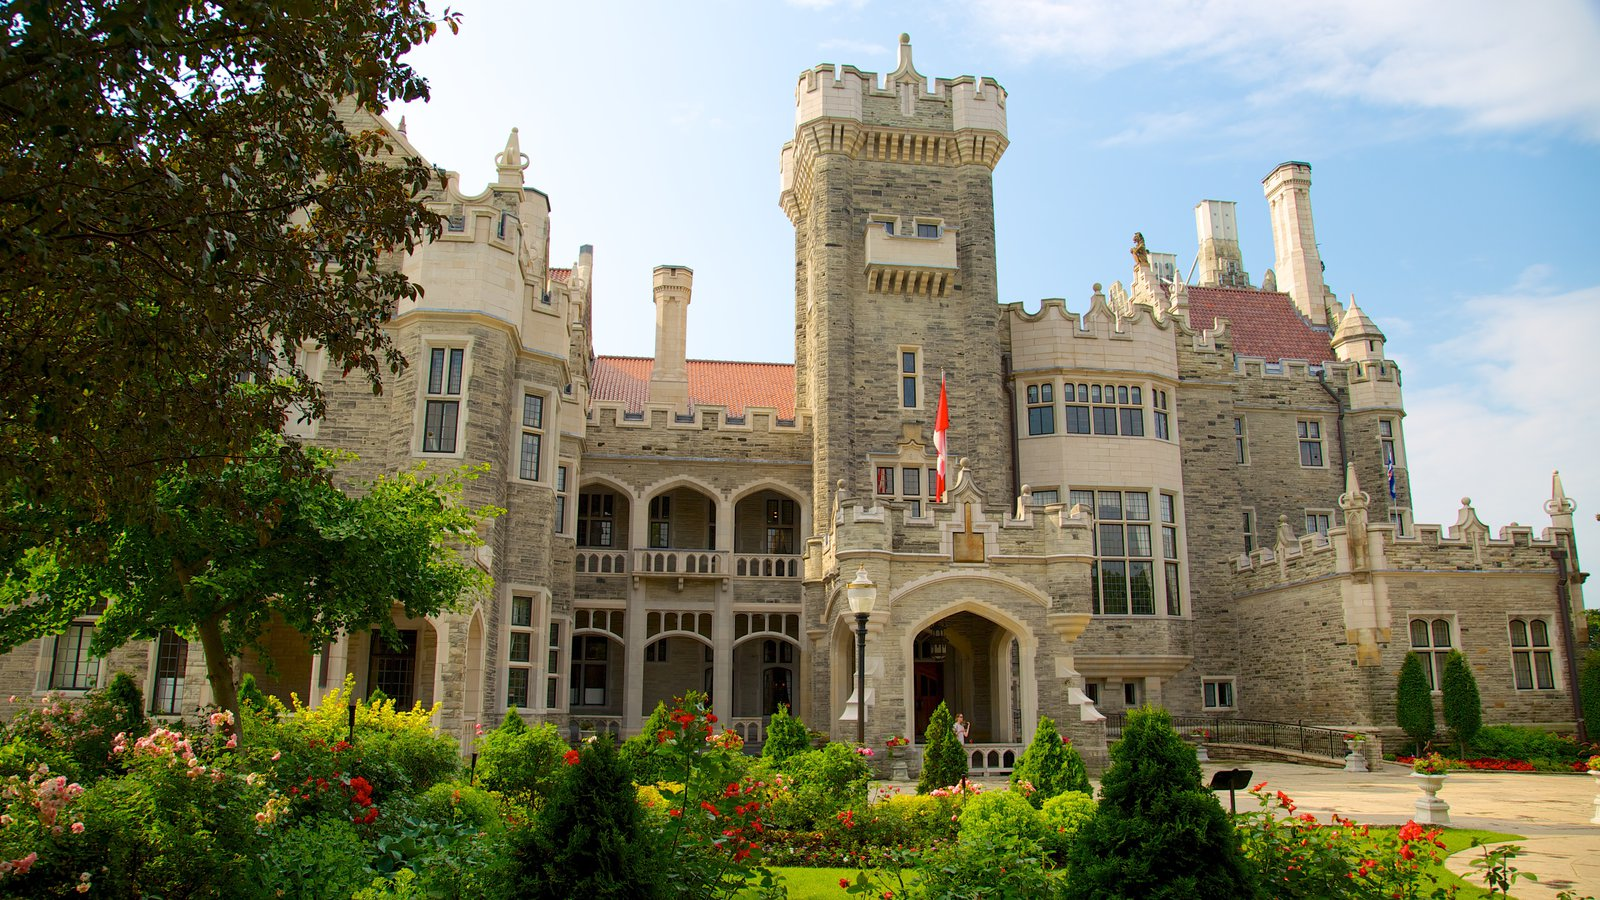 Casa Loma which includes heritage elements, a castle and heritage architecture